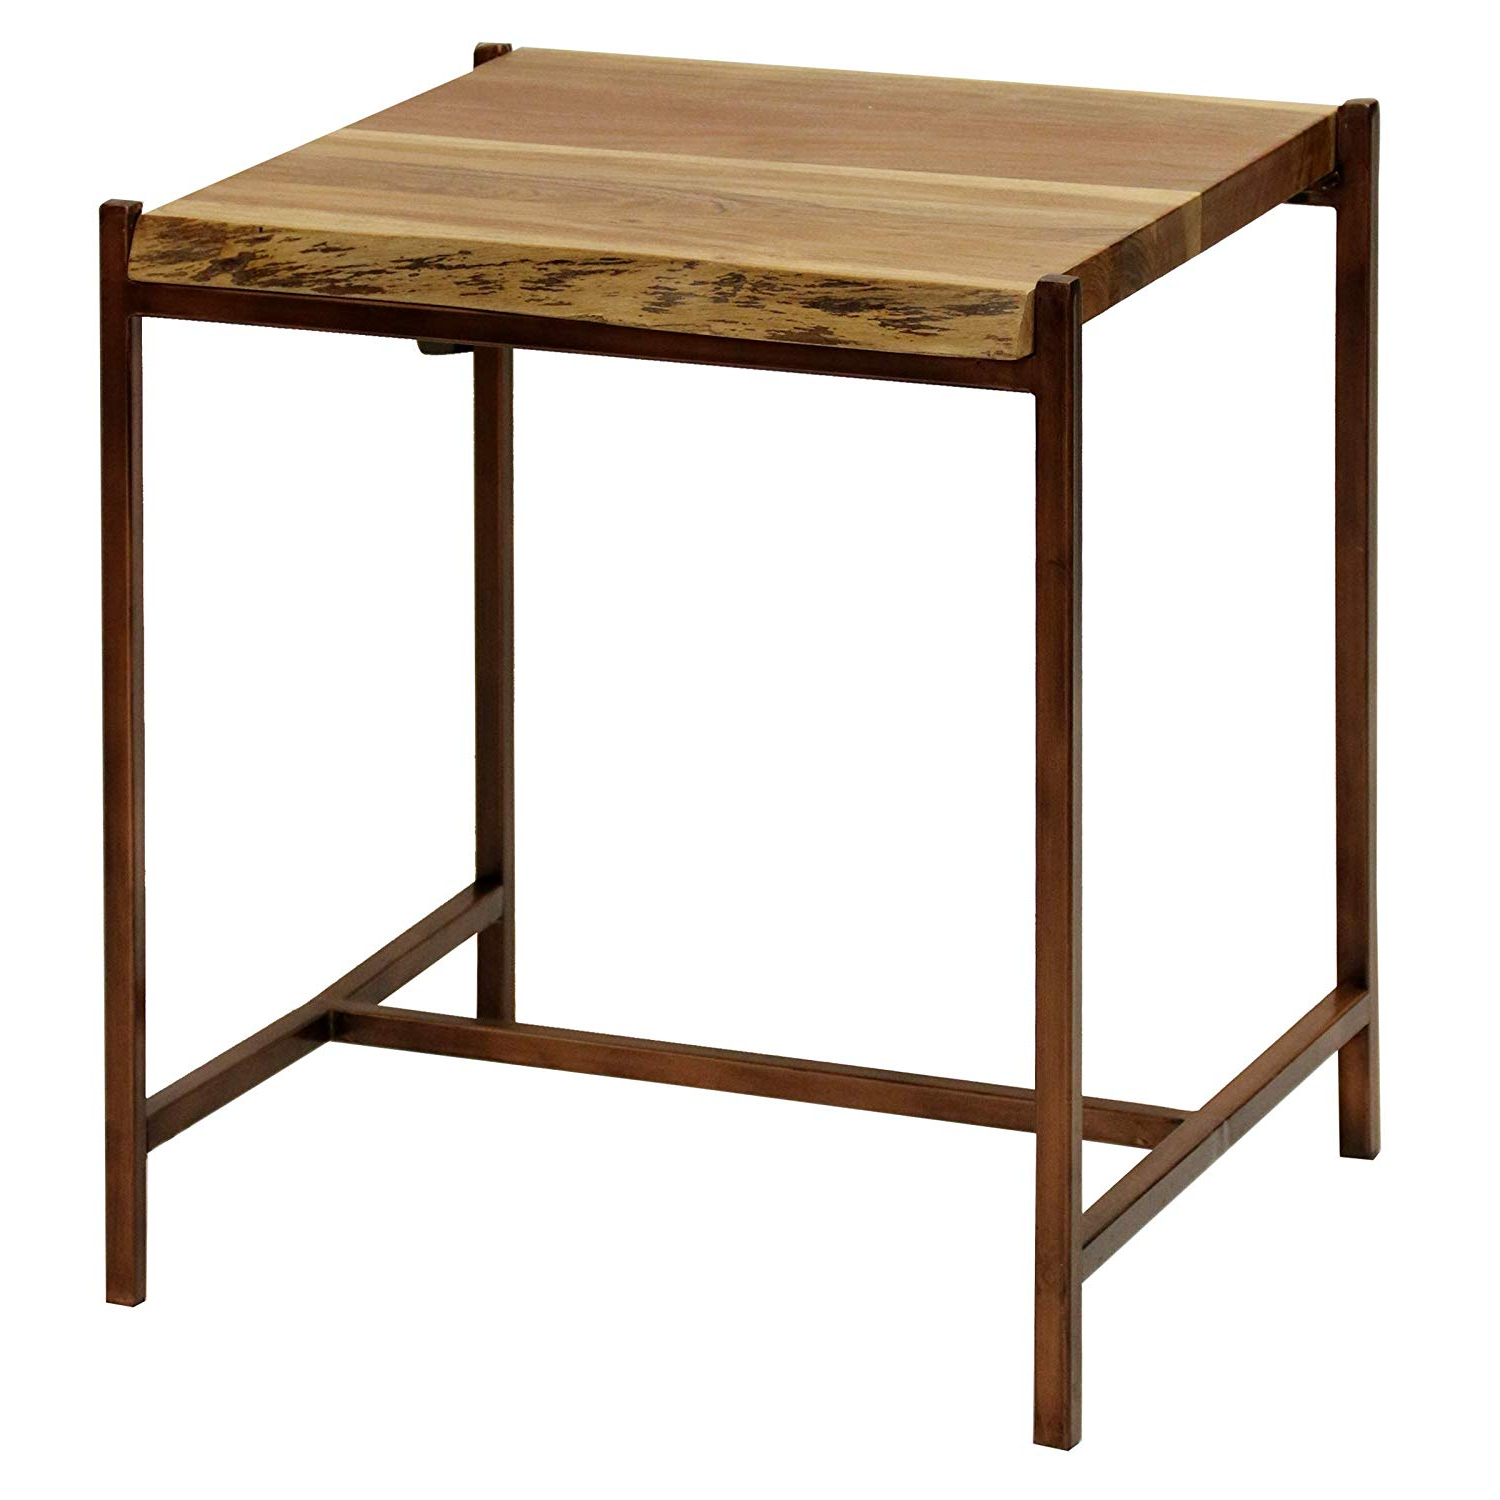 Amazon: Collective Design Transitional Solid Acacia Wood Within Most Recently Released Acacia Dining Tables With Black Rocket Legs (View 15 of 30)